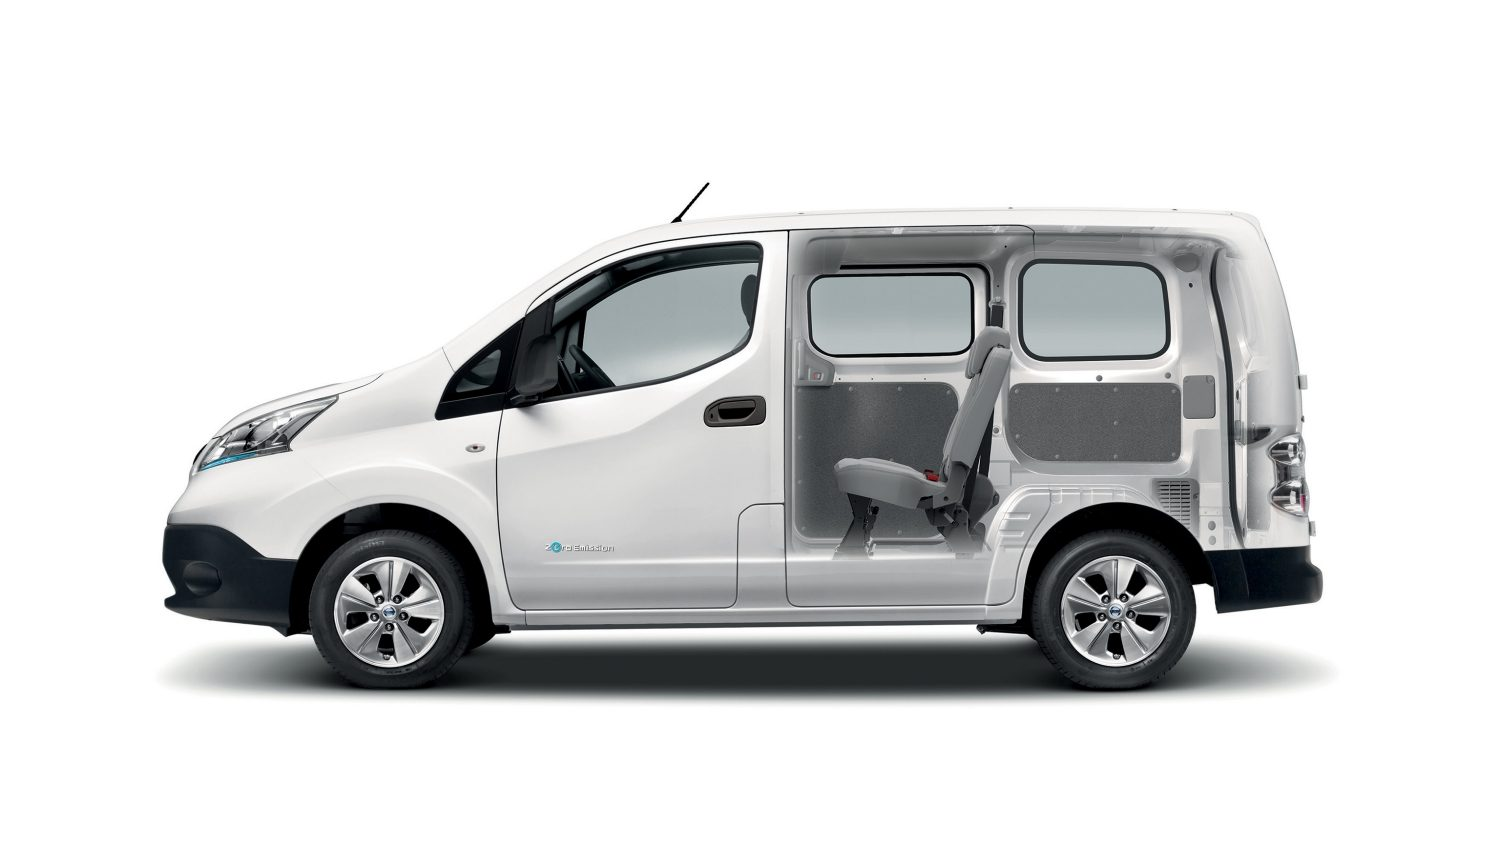 2018 nissan nv200 new car release date and review 2018 amanda felicia. Black Bedroom Furniture Sets. Home Design Ideas